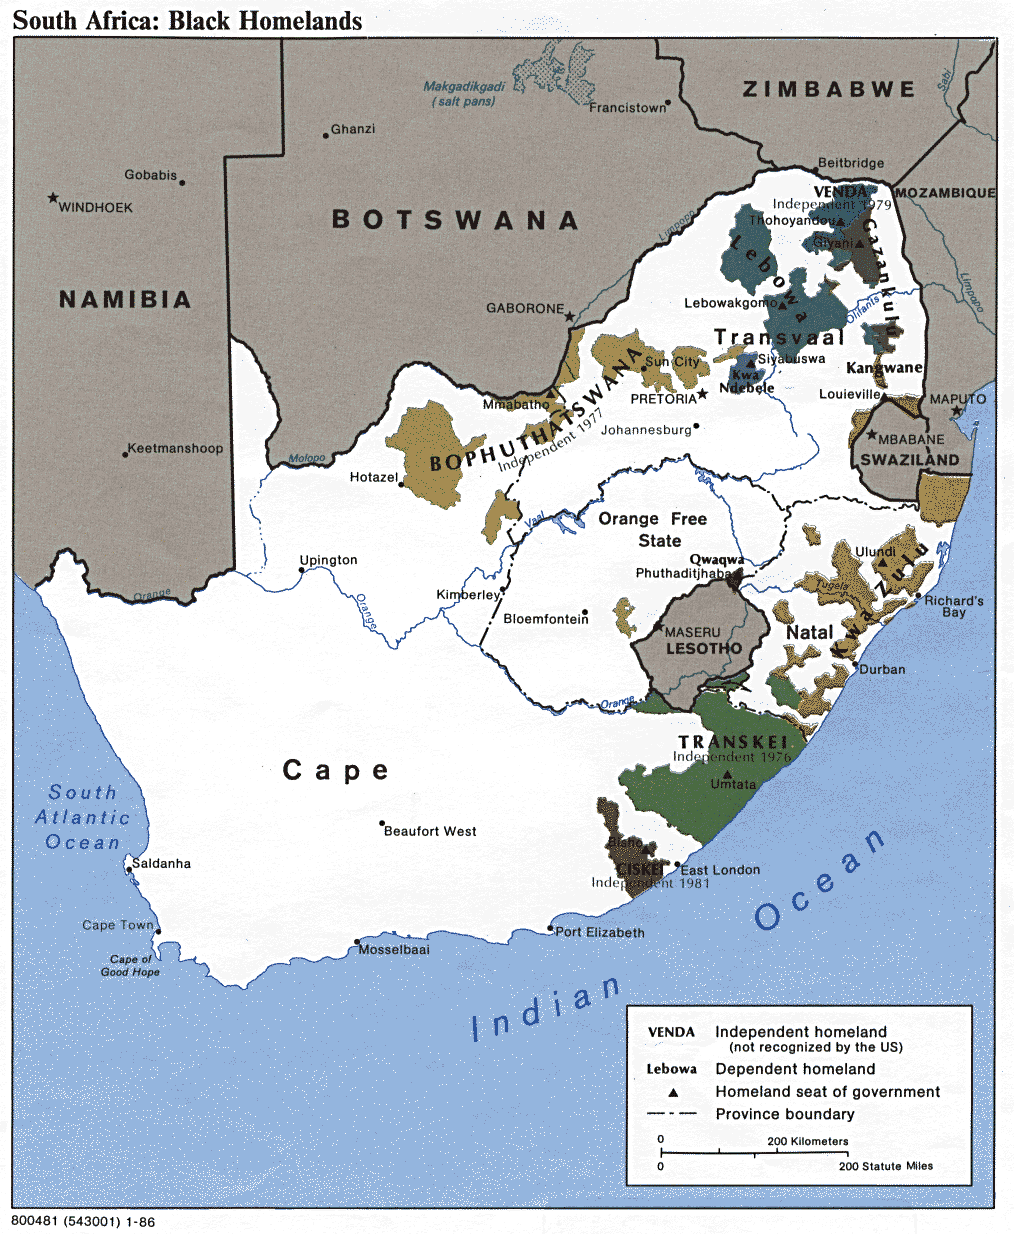 map of south africa during apartheid South Africa Apartheid map of south africa during apartheid